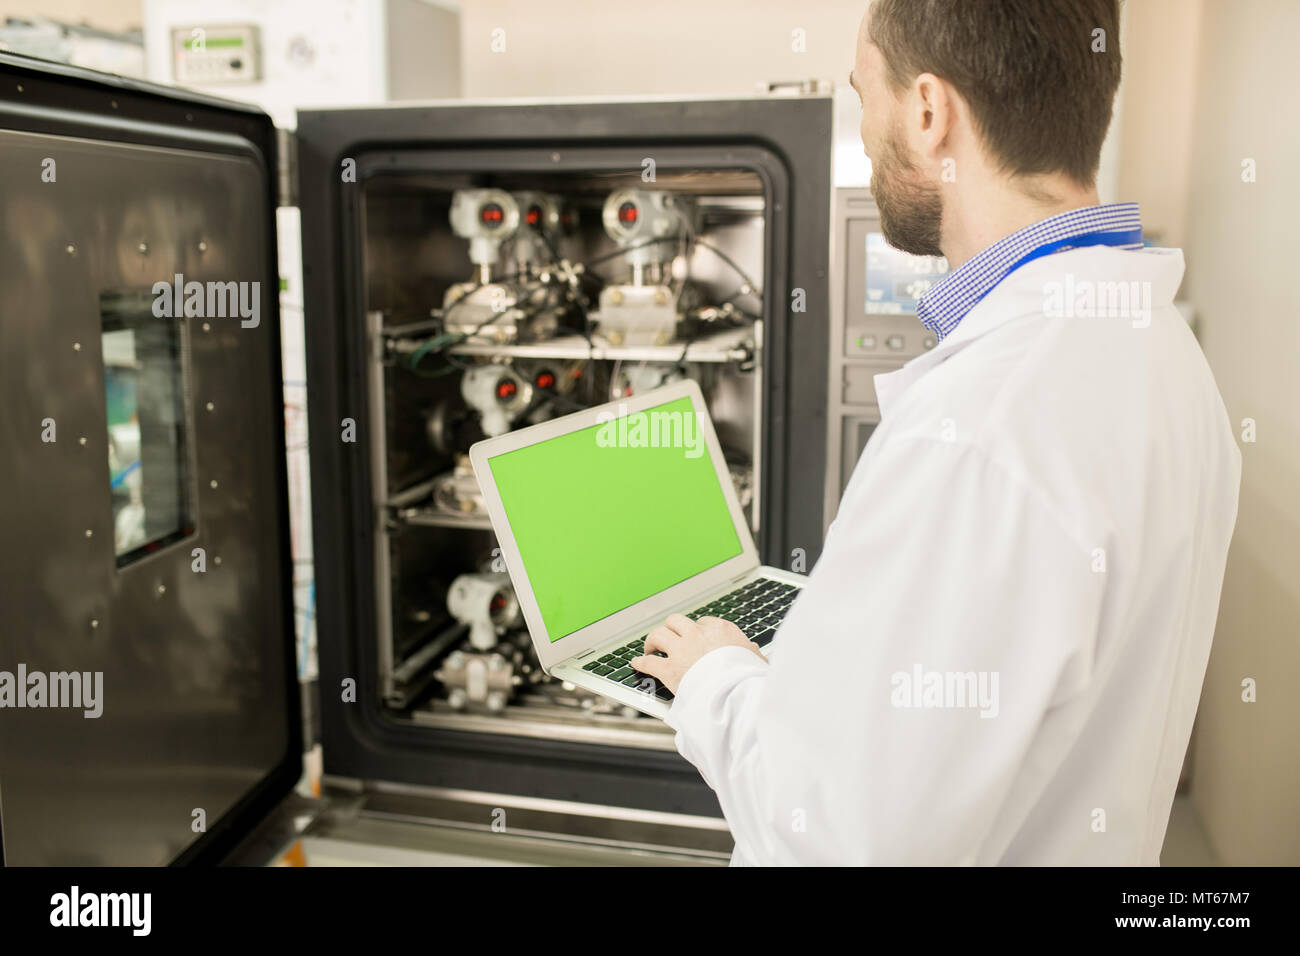 Test engineer in lab coat calibrating measuring devices - Stock Image